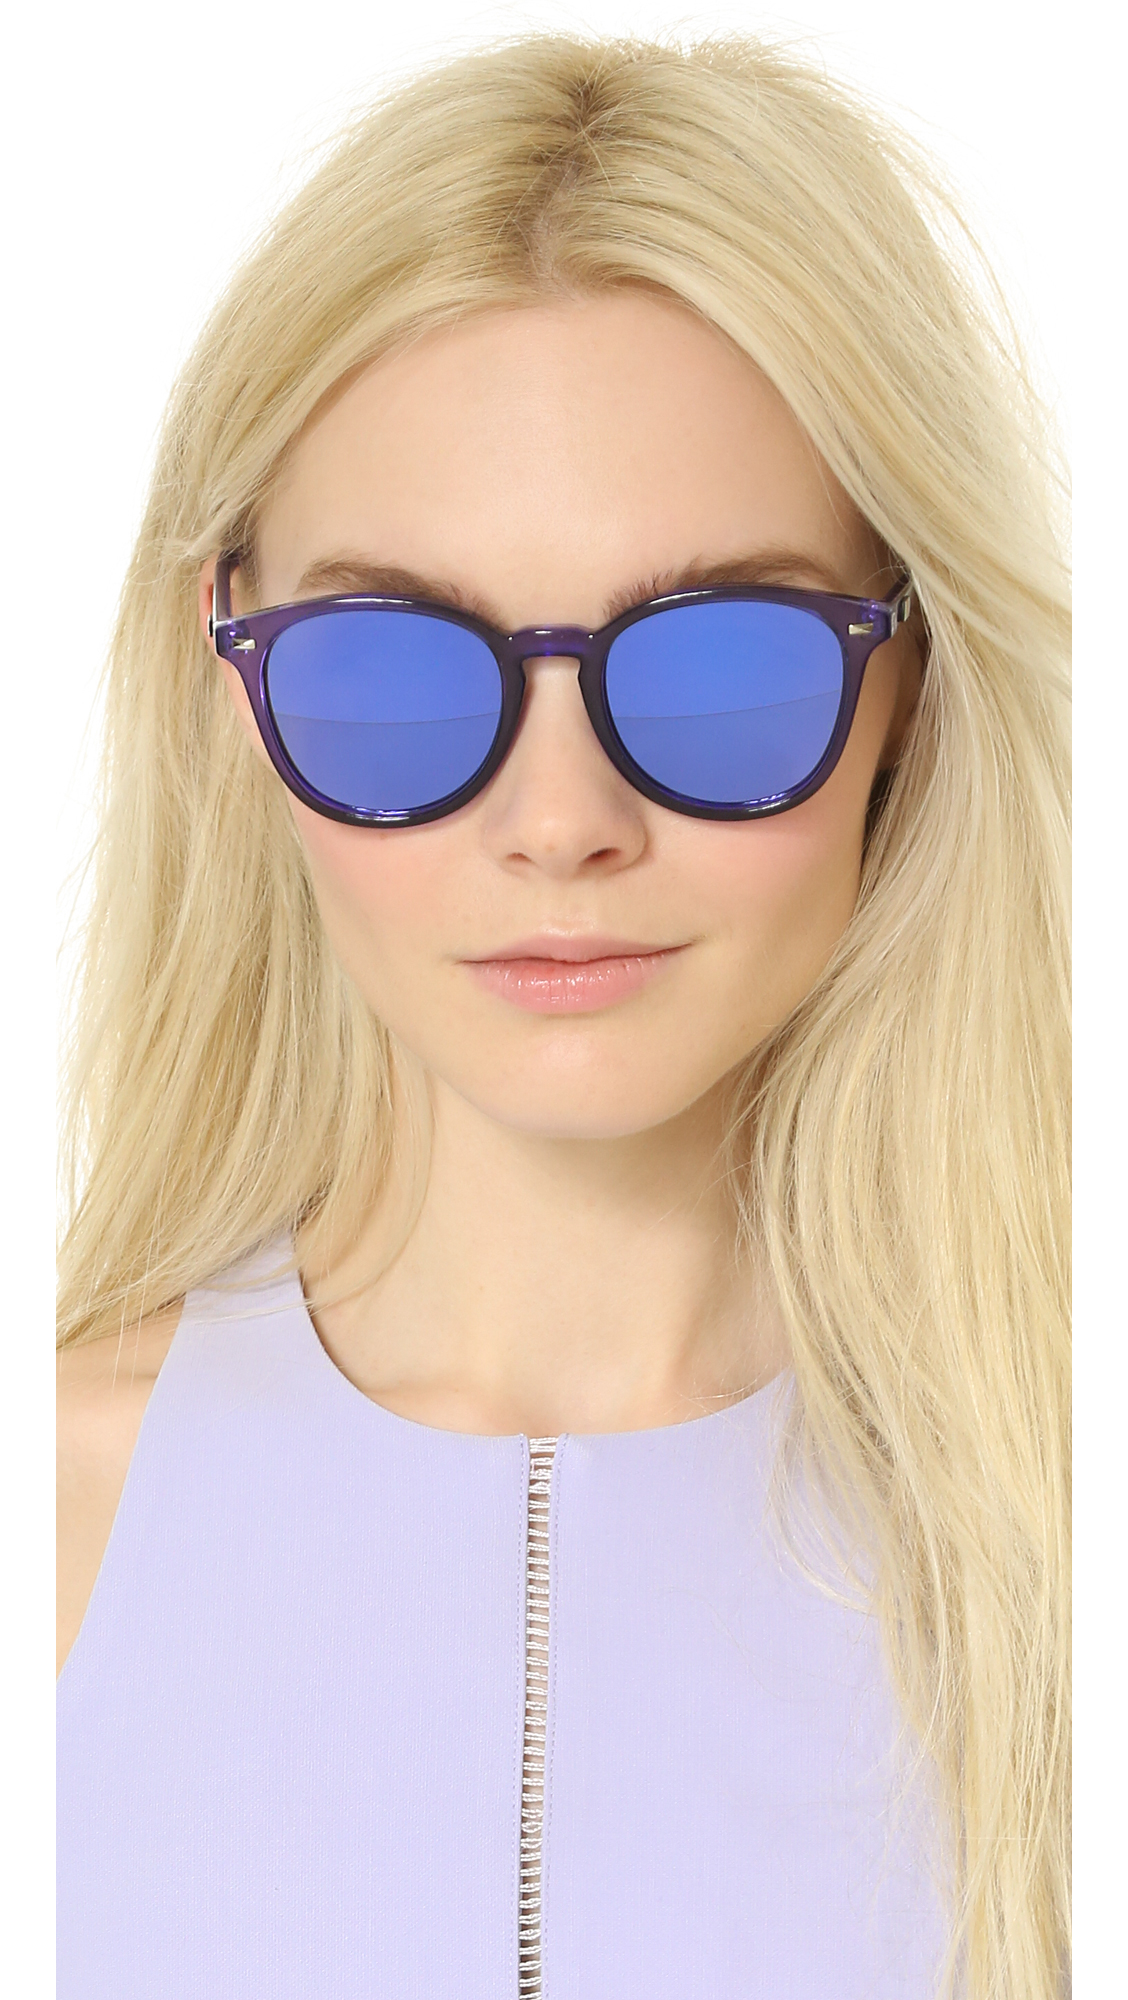 03414d3e9dc Le Specs Bandwagon Sunglasses - Ultraviolet purple Revo Mirror in ...